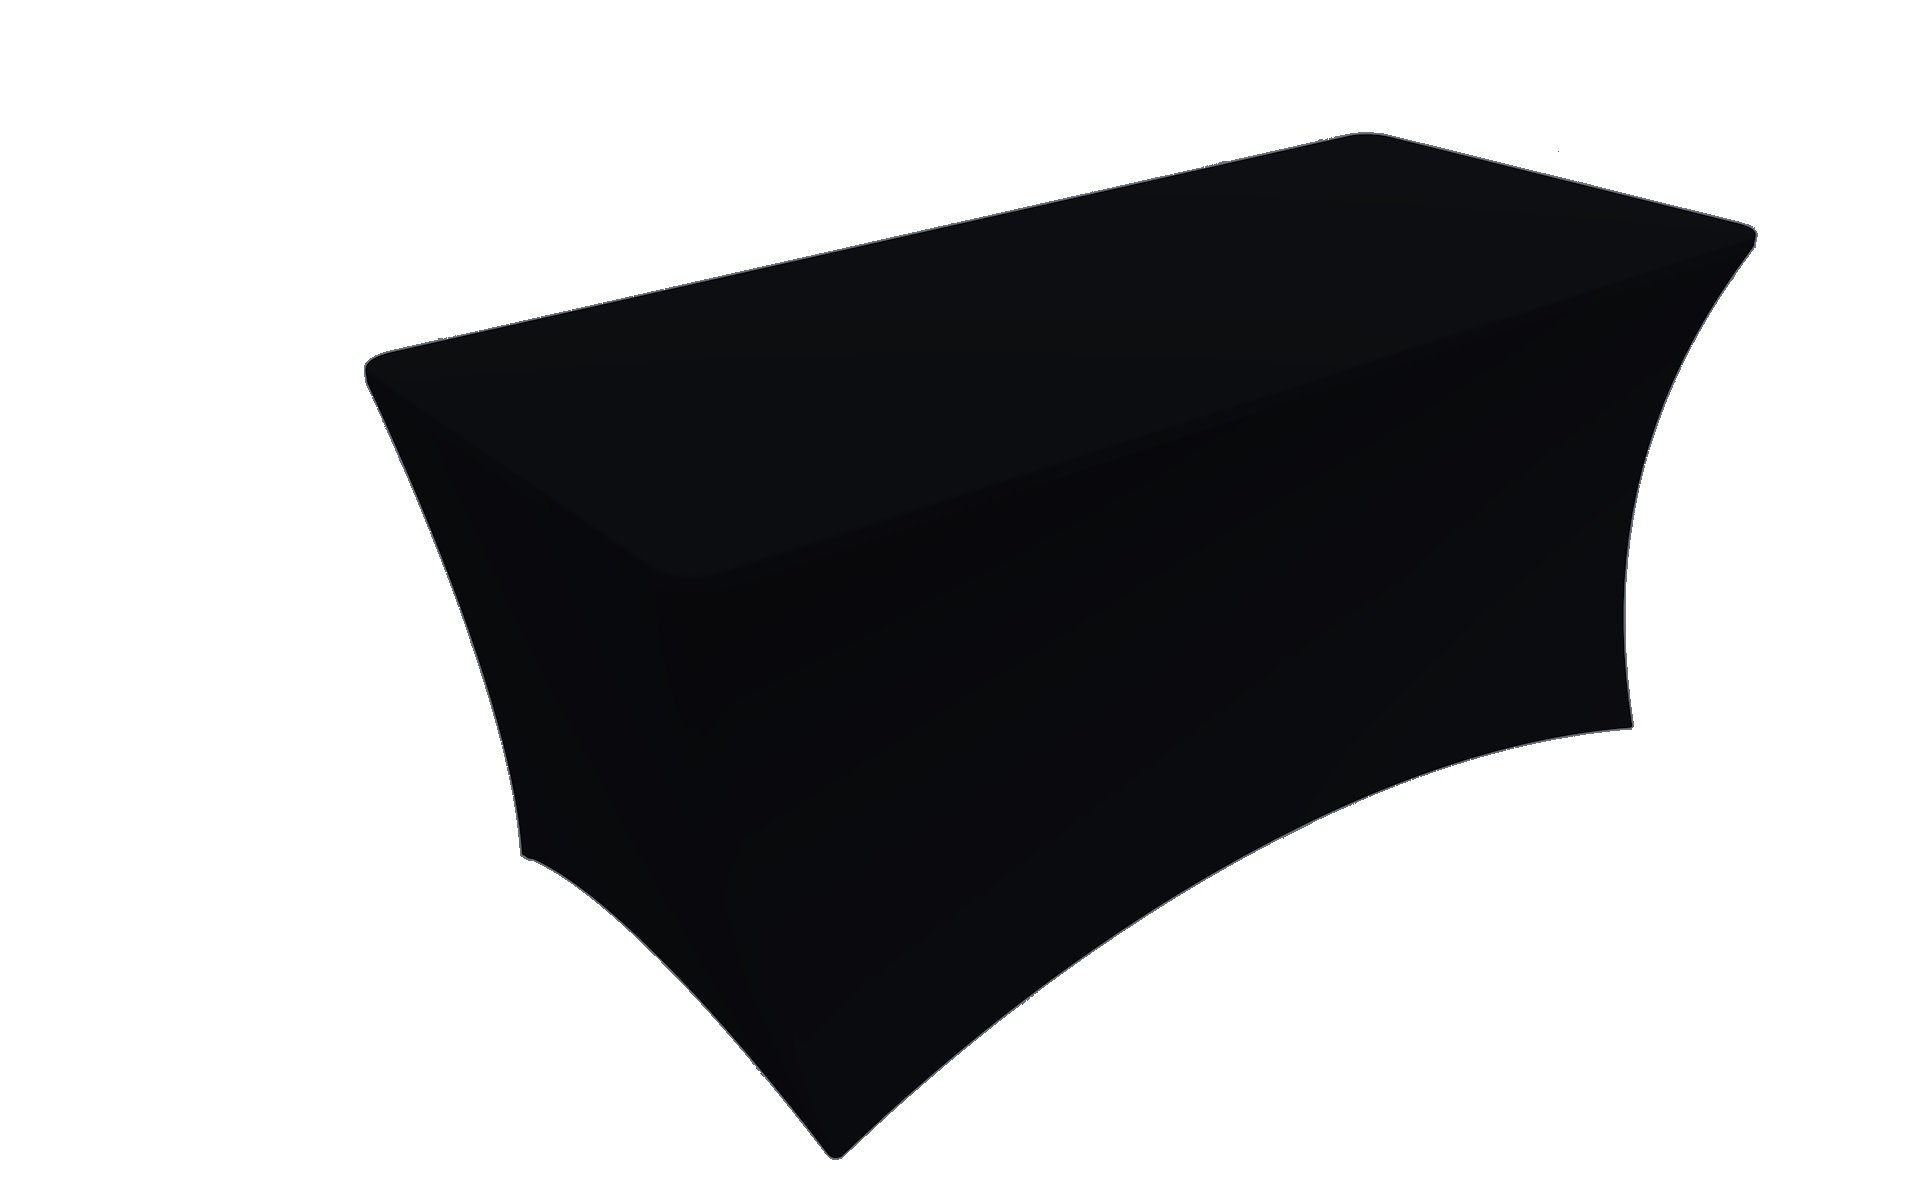 SY66 table cloths Tablecloth Cover, 6 ft white,Table Cloth Skirts, Rectangular, Polyester/Spandex, Elastic, Stretchable Linen, Stain & Wrinkle Proof, for Folding Tables, Wedding, DJ, Events (black)